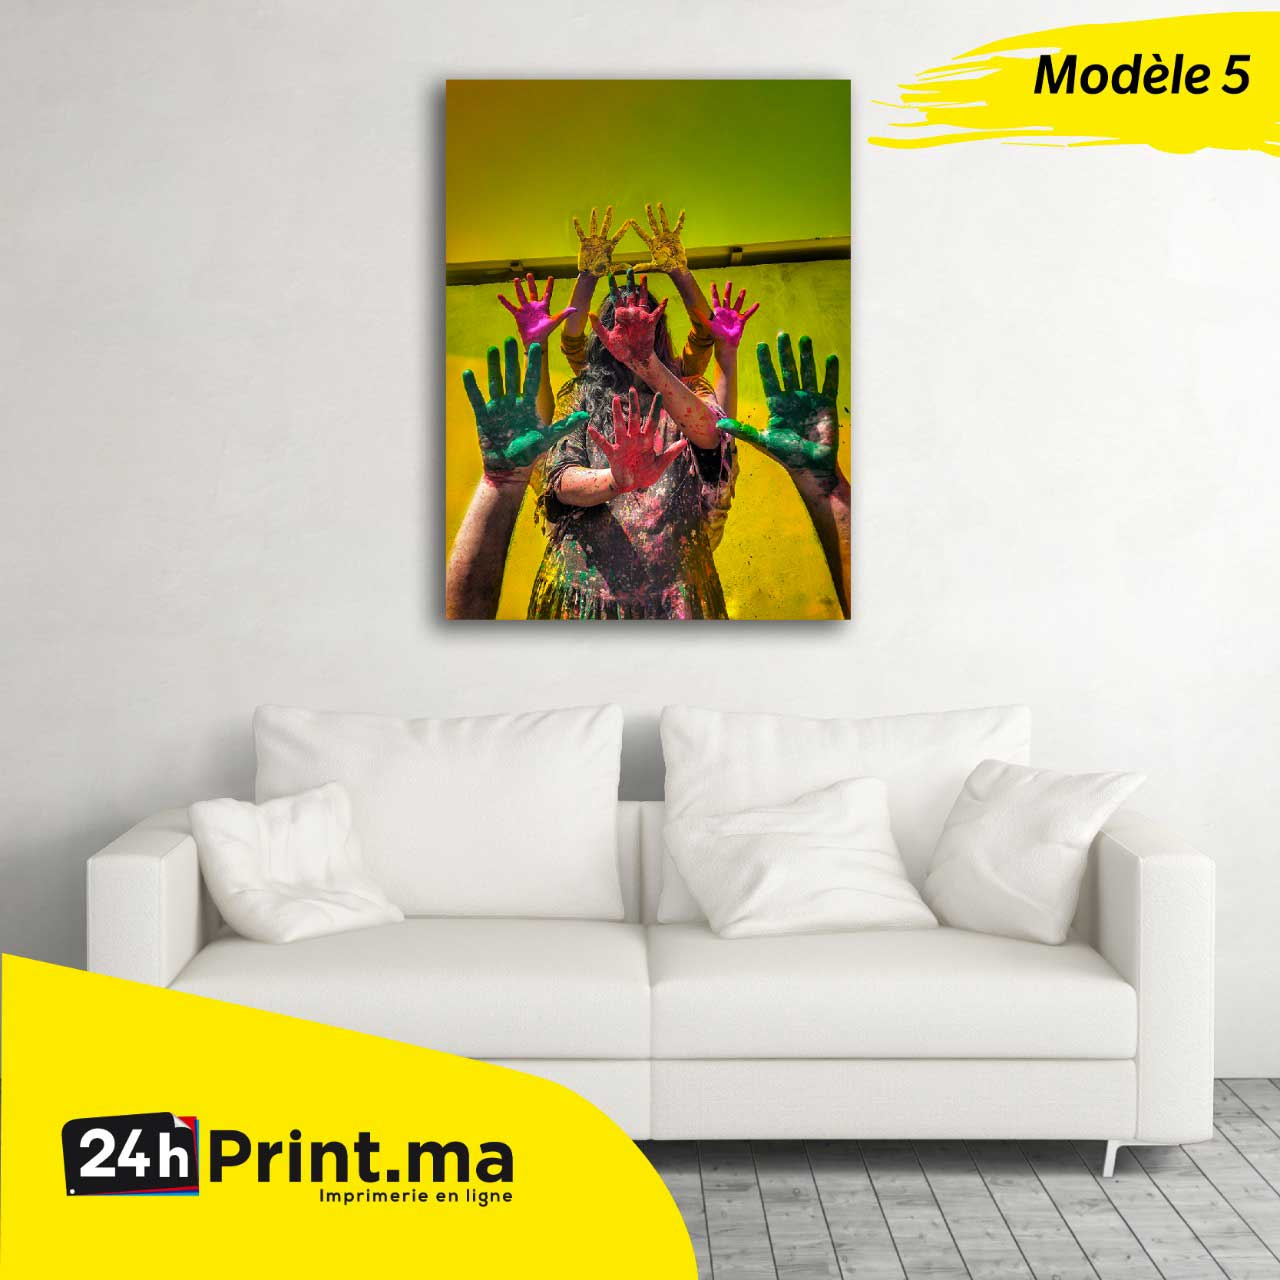 https://www.24hprint.ma/images/products_gallery_images/516.jpg